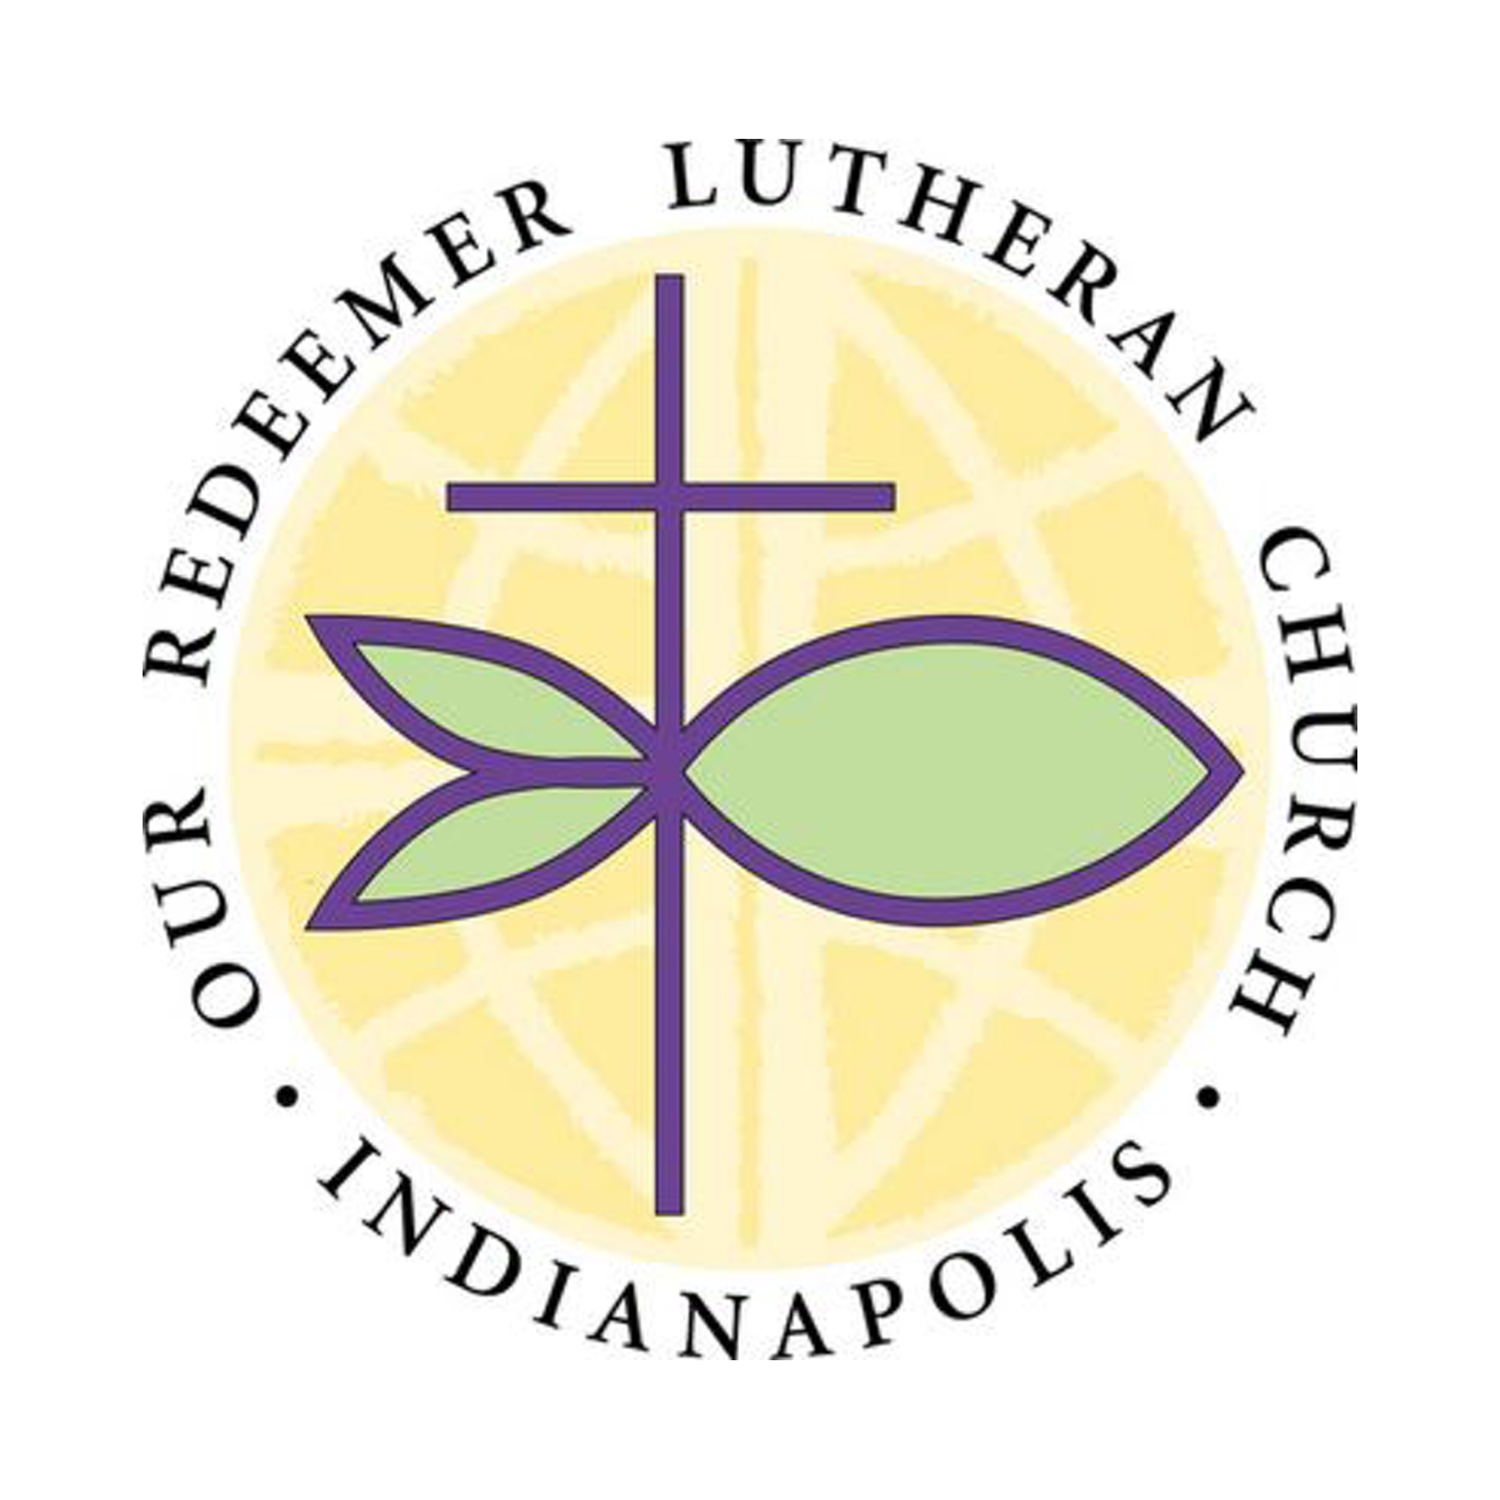 Our Redeemer Lutheran Church CLOSED APRIL 1, 2918